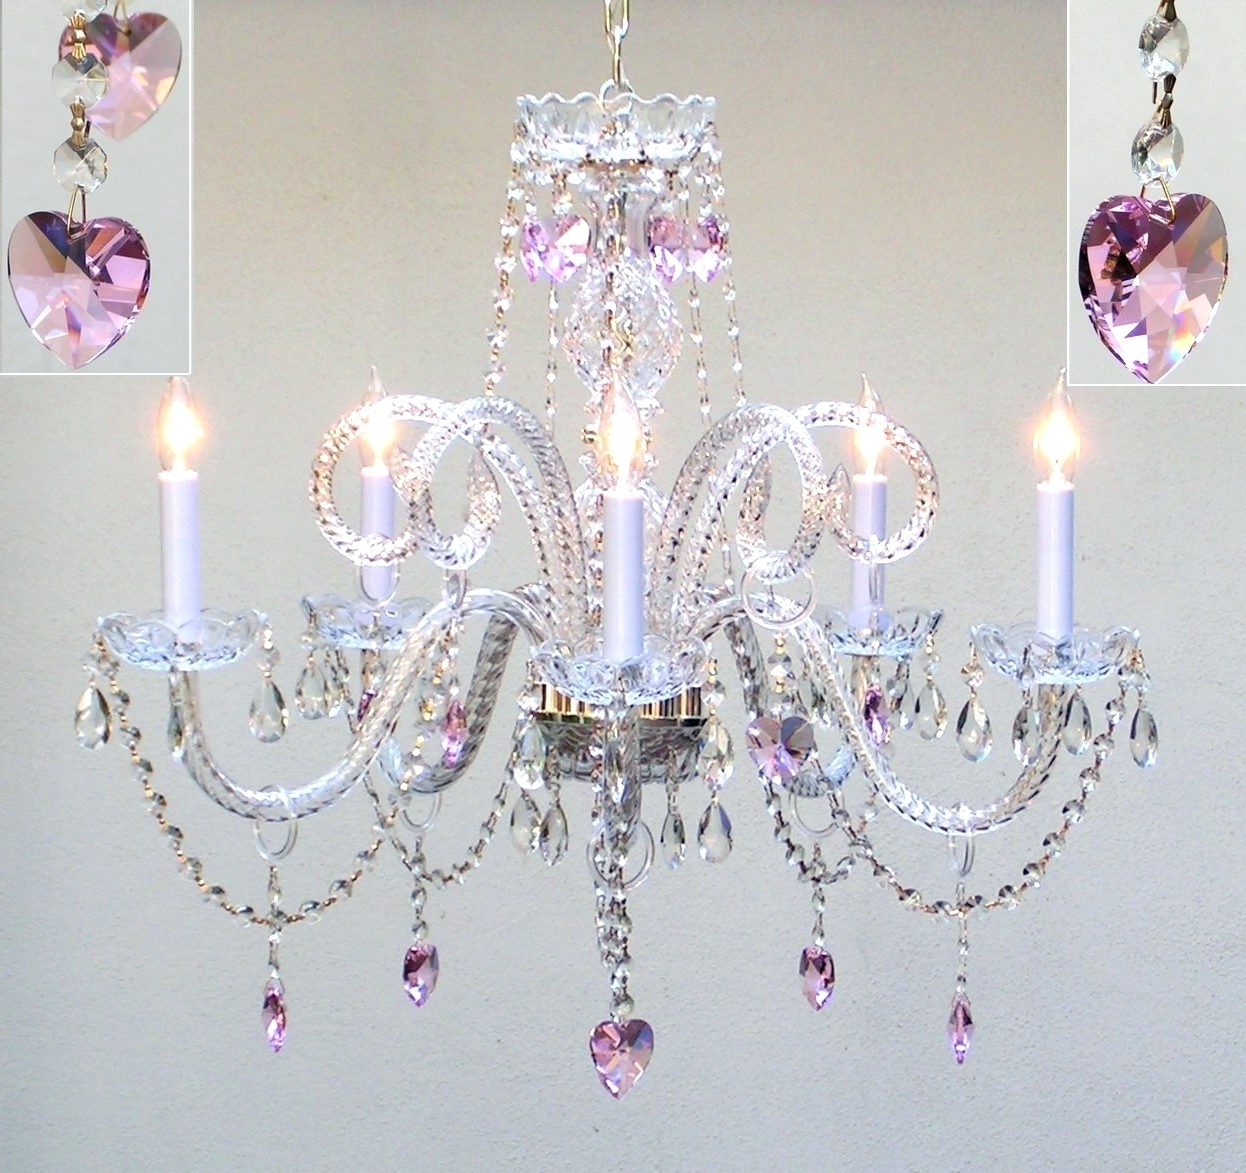 Current Light : Lamp Create An Adorable Room For Your Gallery With For Crystal Chandeliers For Baby Girl Room (View 8 of 15)